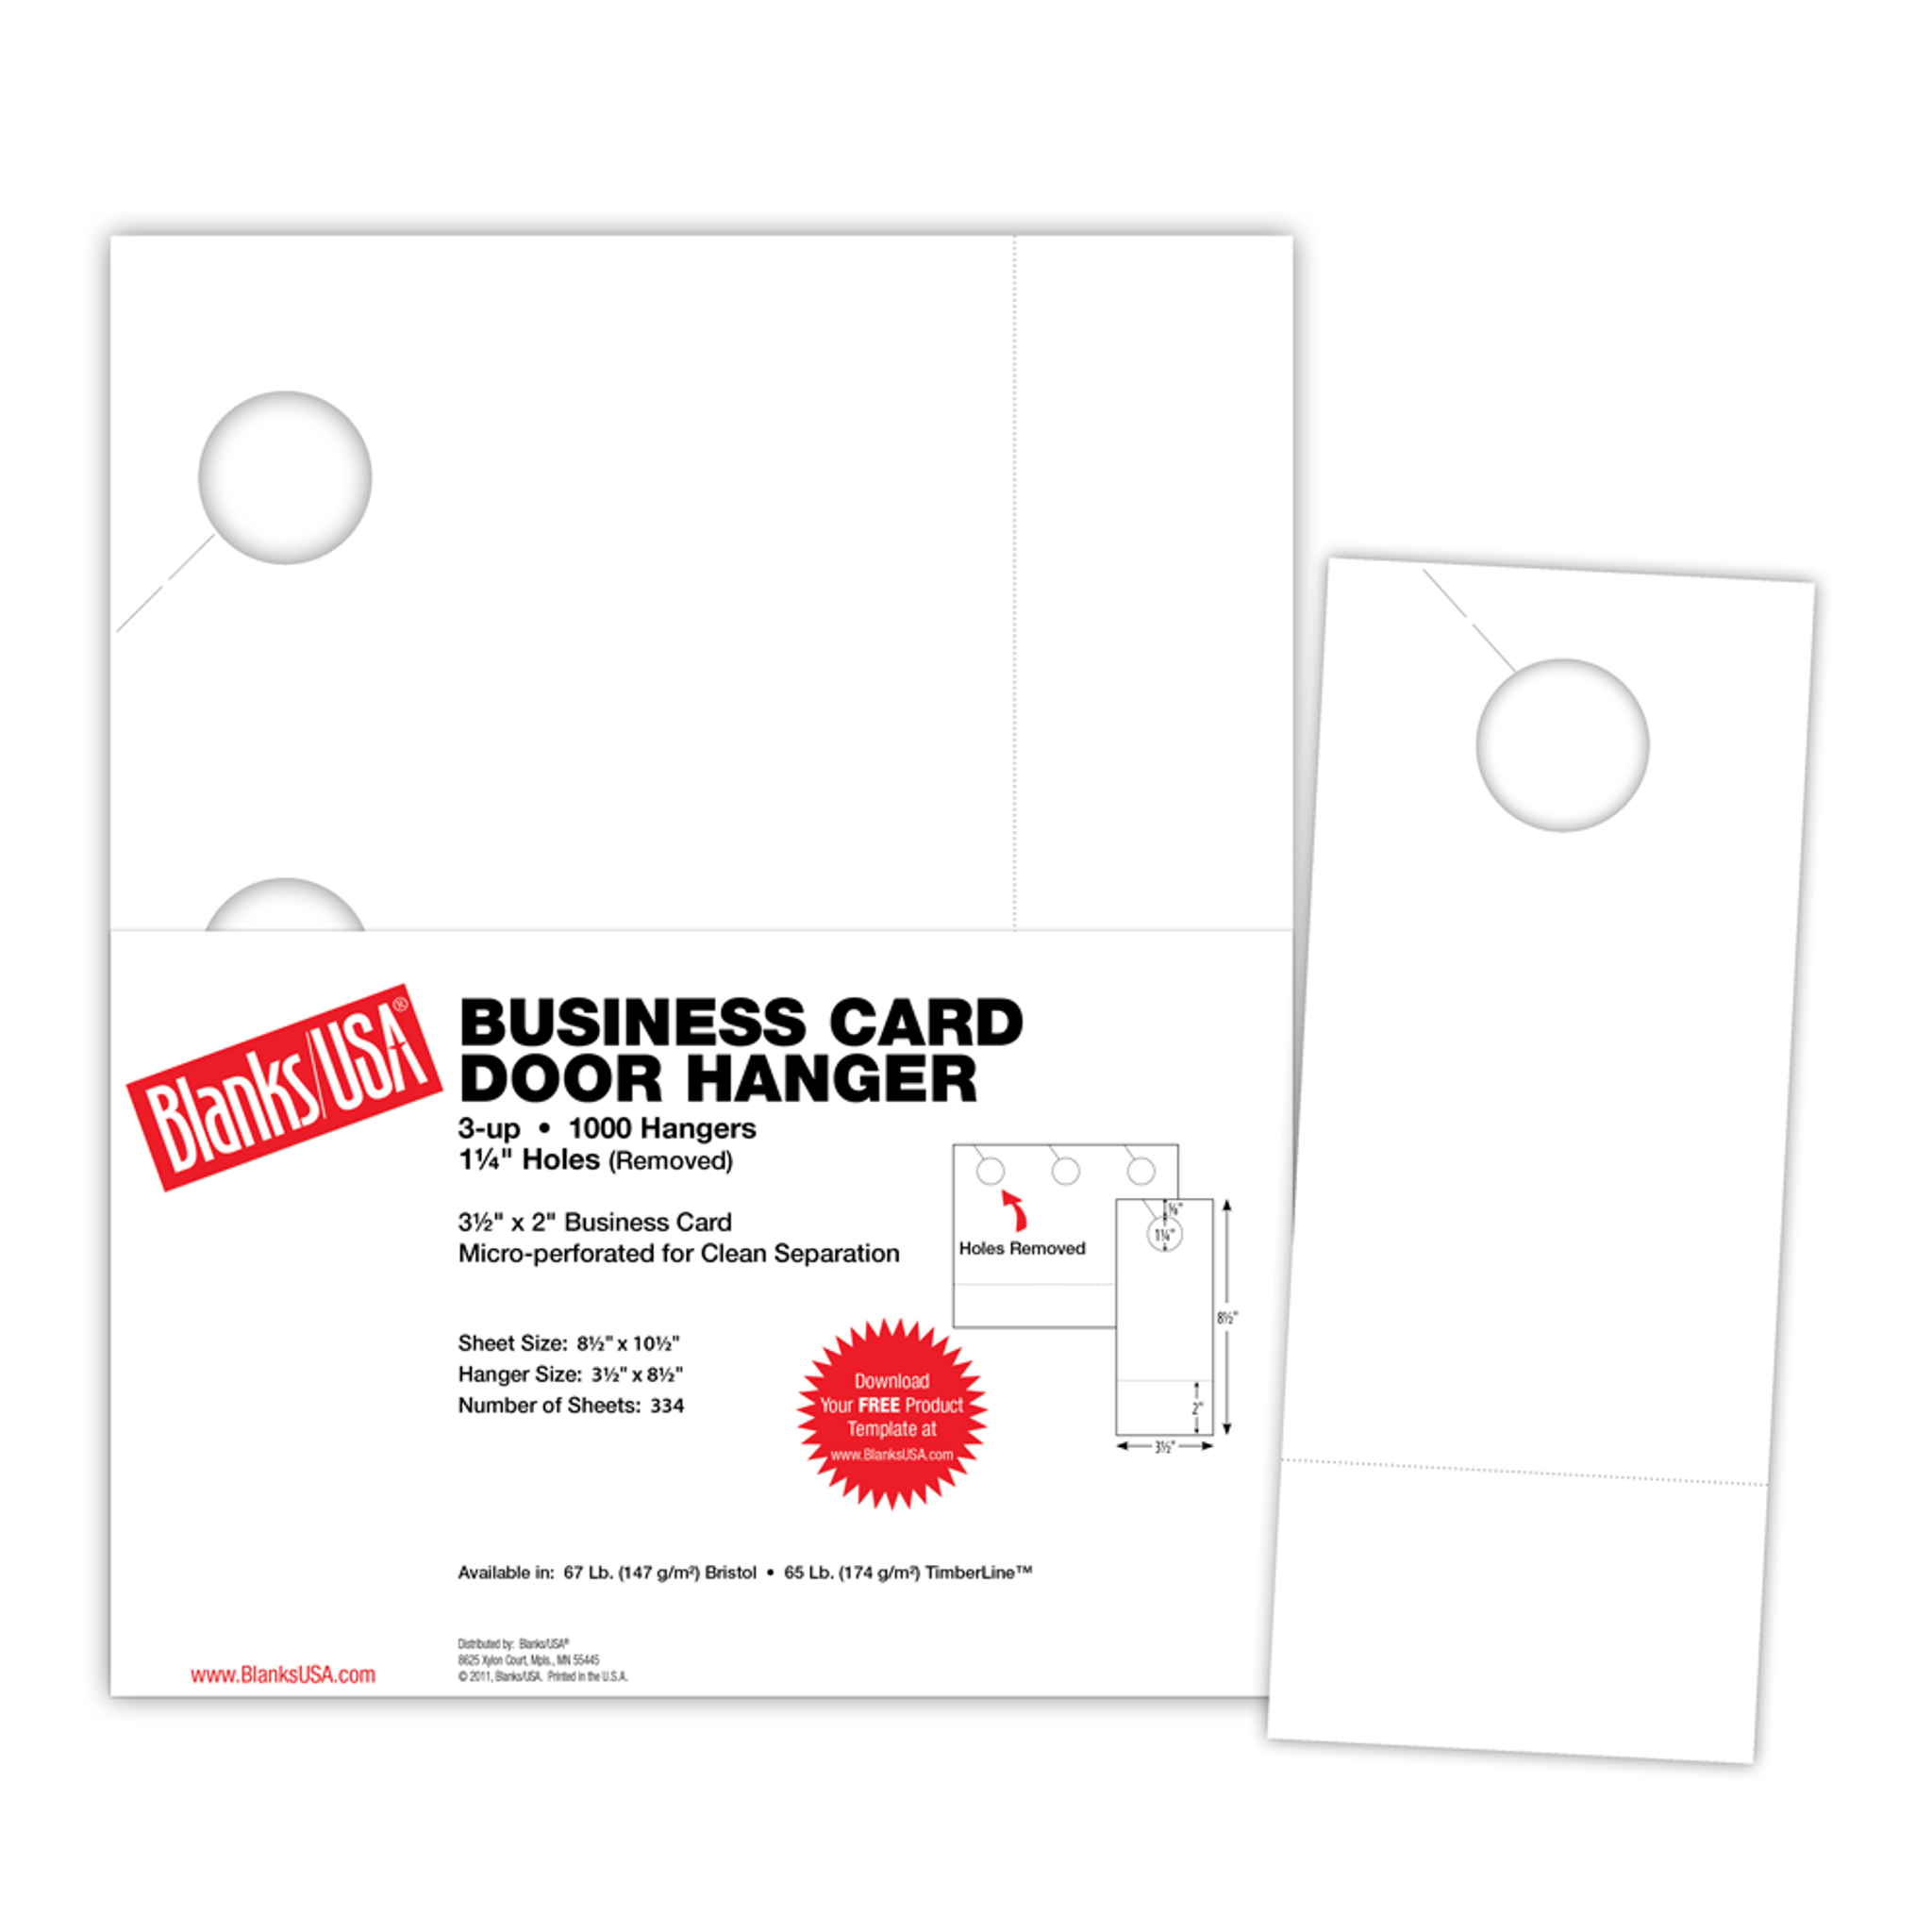 Door Hanger with Business Card - DHBC10B63 - Blanks USA